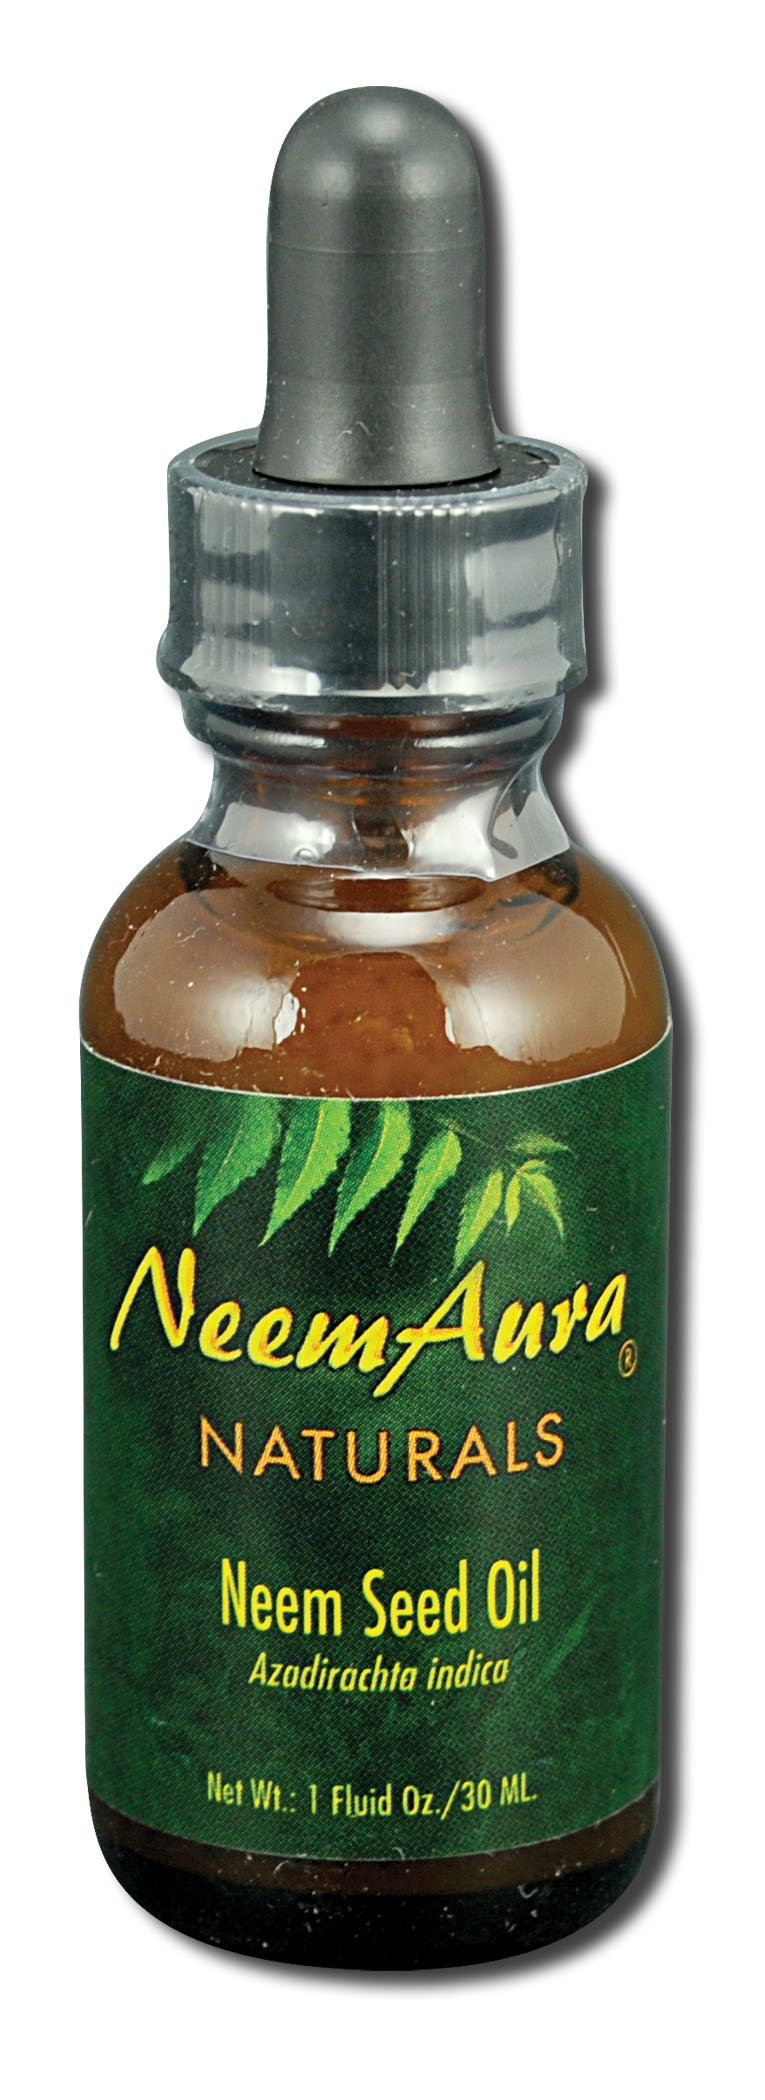 Neem Aura Naturals Neem Seed Topical Oil, 1 Ounce - 3 per case.